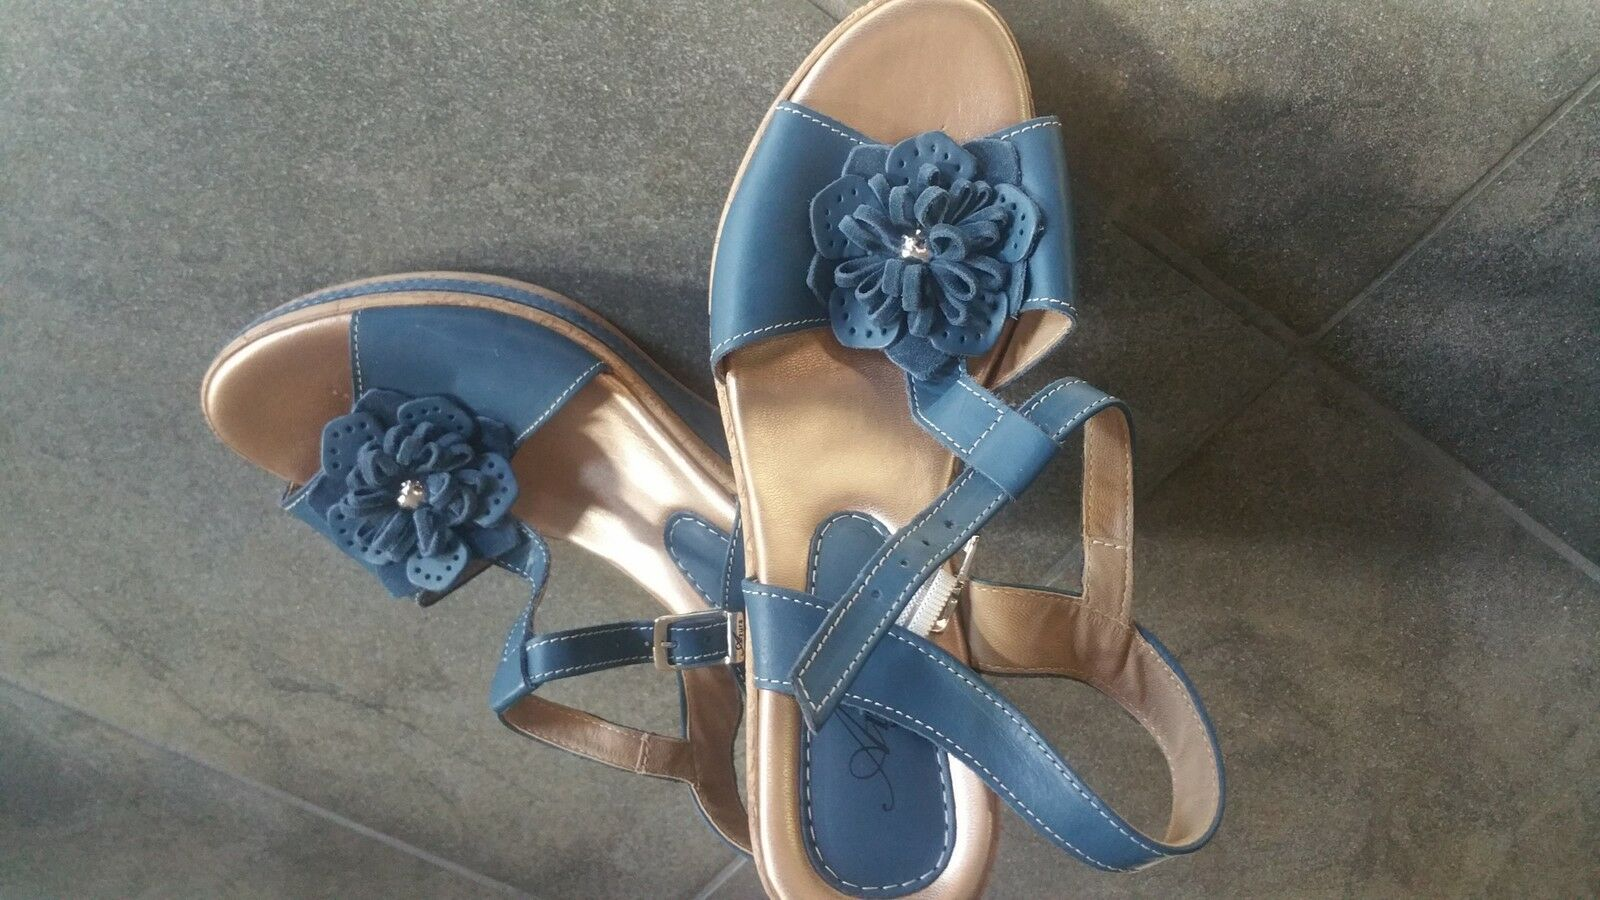 *New* COACH Summers Brown Leather Flats Sandals Women's Sz 8.5 Ankle Strap